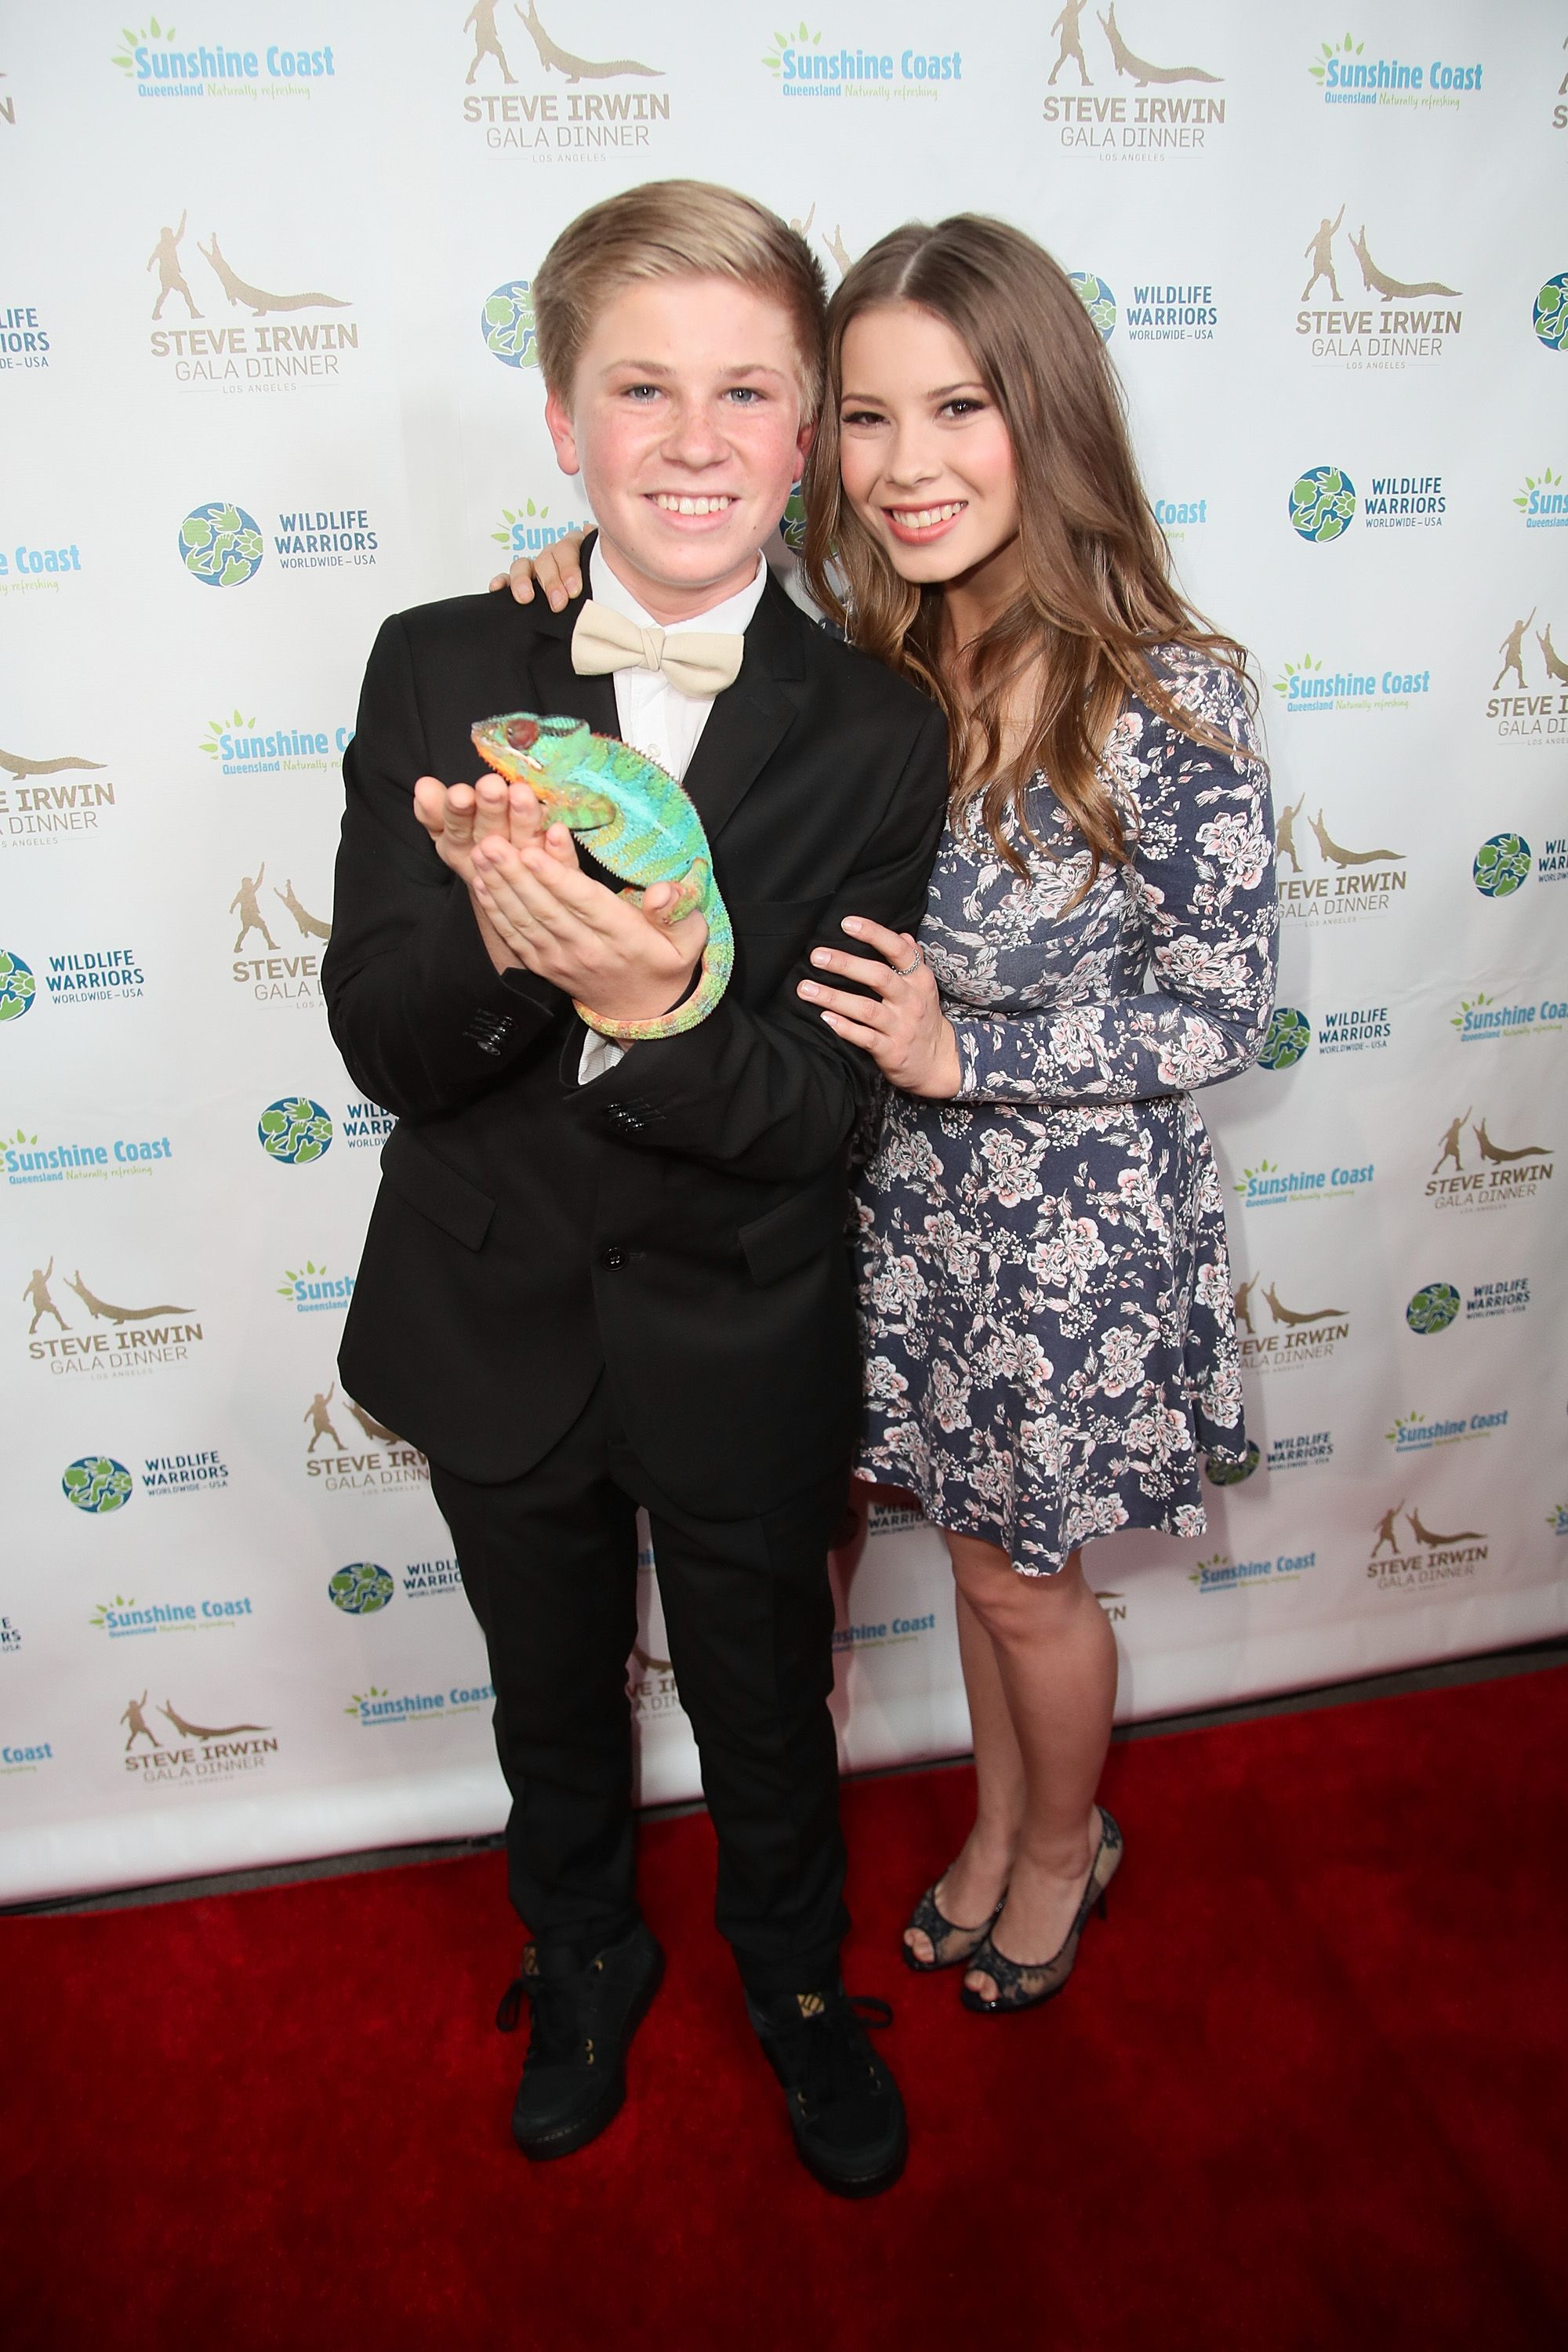 Robert and Bindi Irwin at the Steve Irwin Gala Dinner at the SLS Hotel in Beverly Hills on May 13, 2017, in Los Angeles, California | Photo: David Livingston/Getty Images